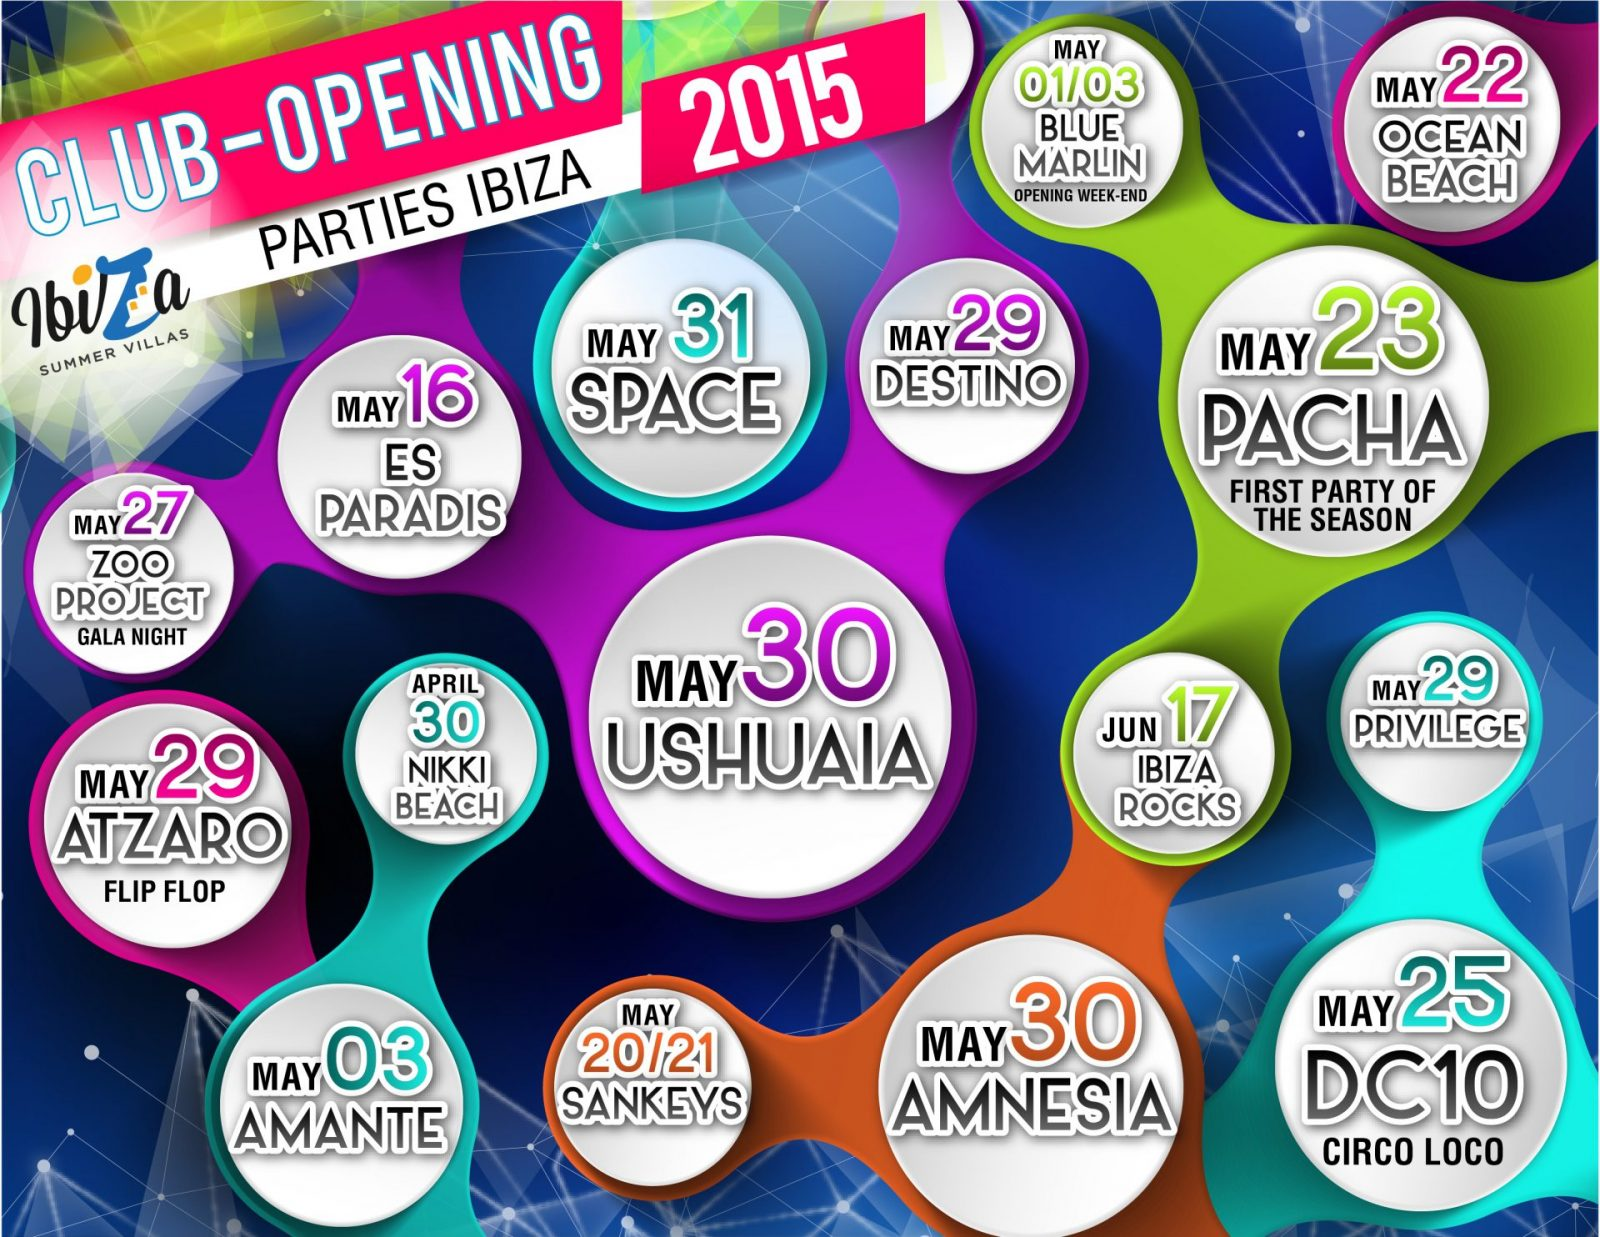 Best Ibiza Club-Opening Parties & Summer Events Guide 2015